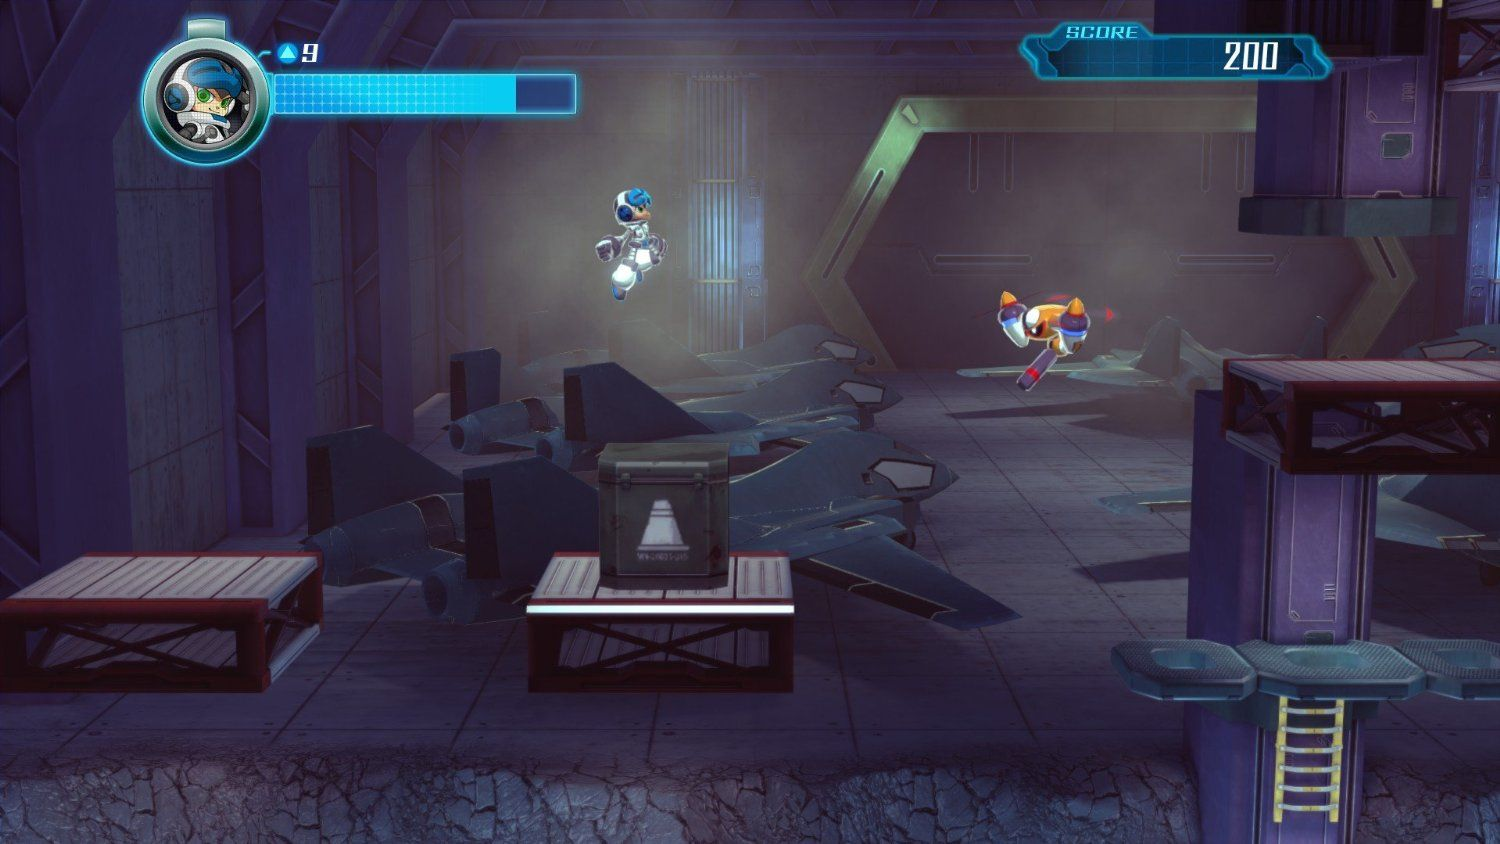 Mighty No 9 (PS4) - 3